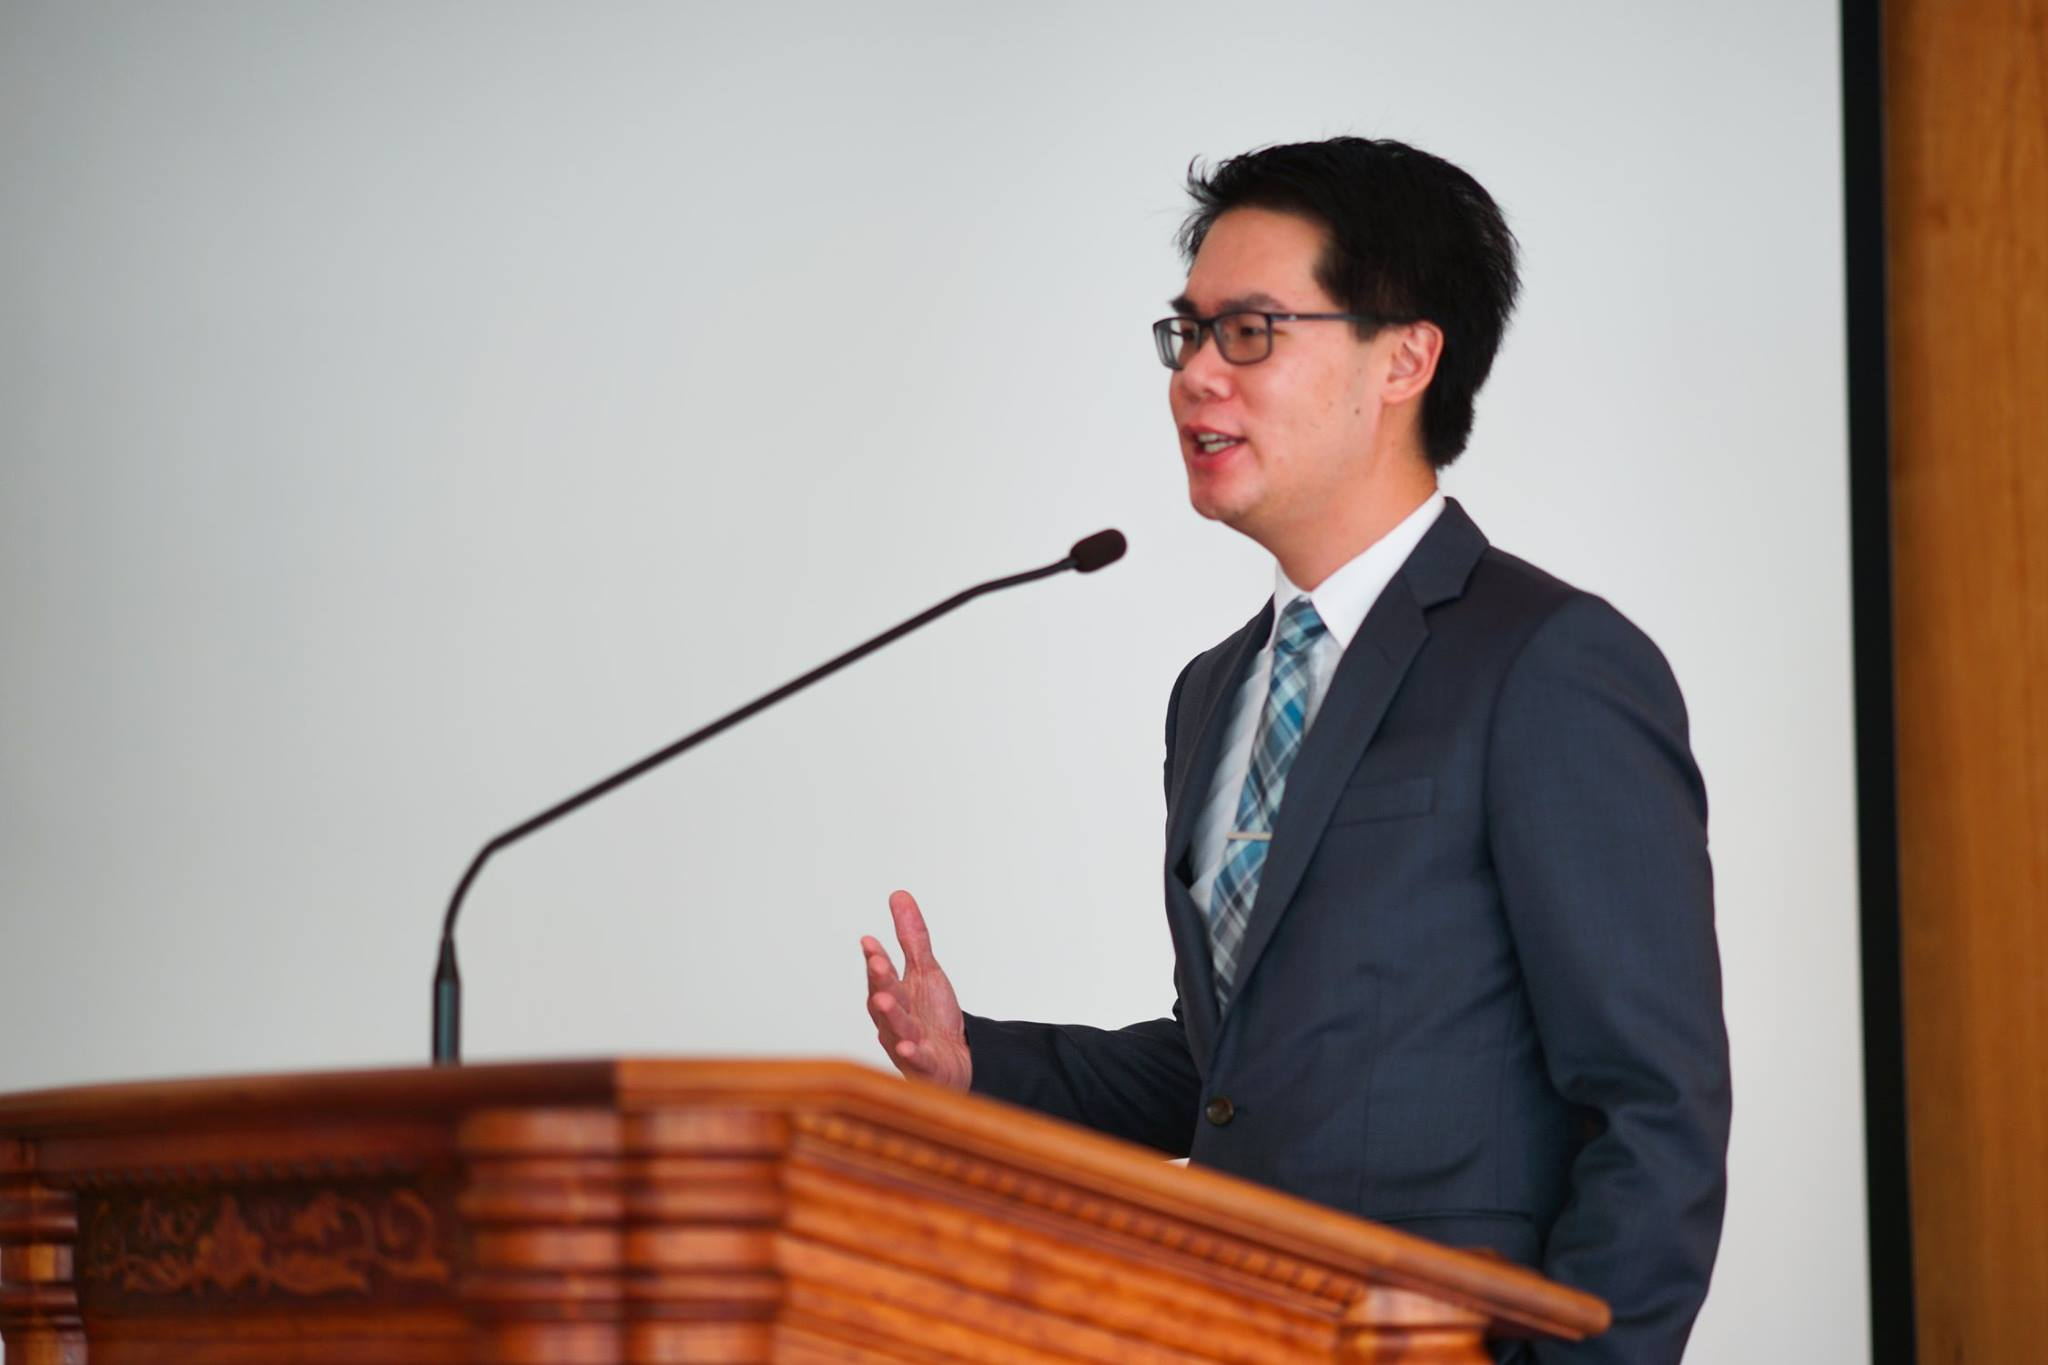 Conference Founder Jeff Wu